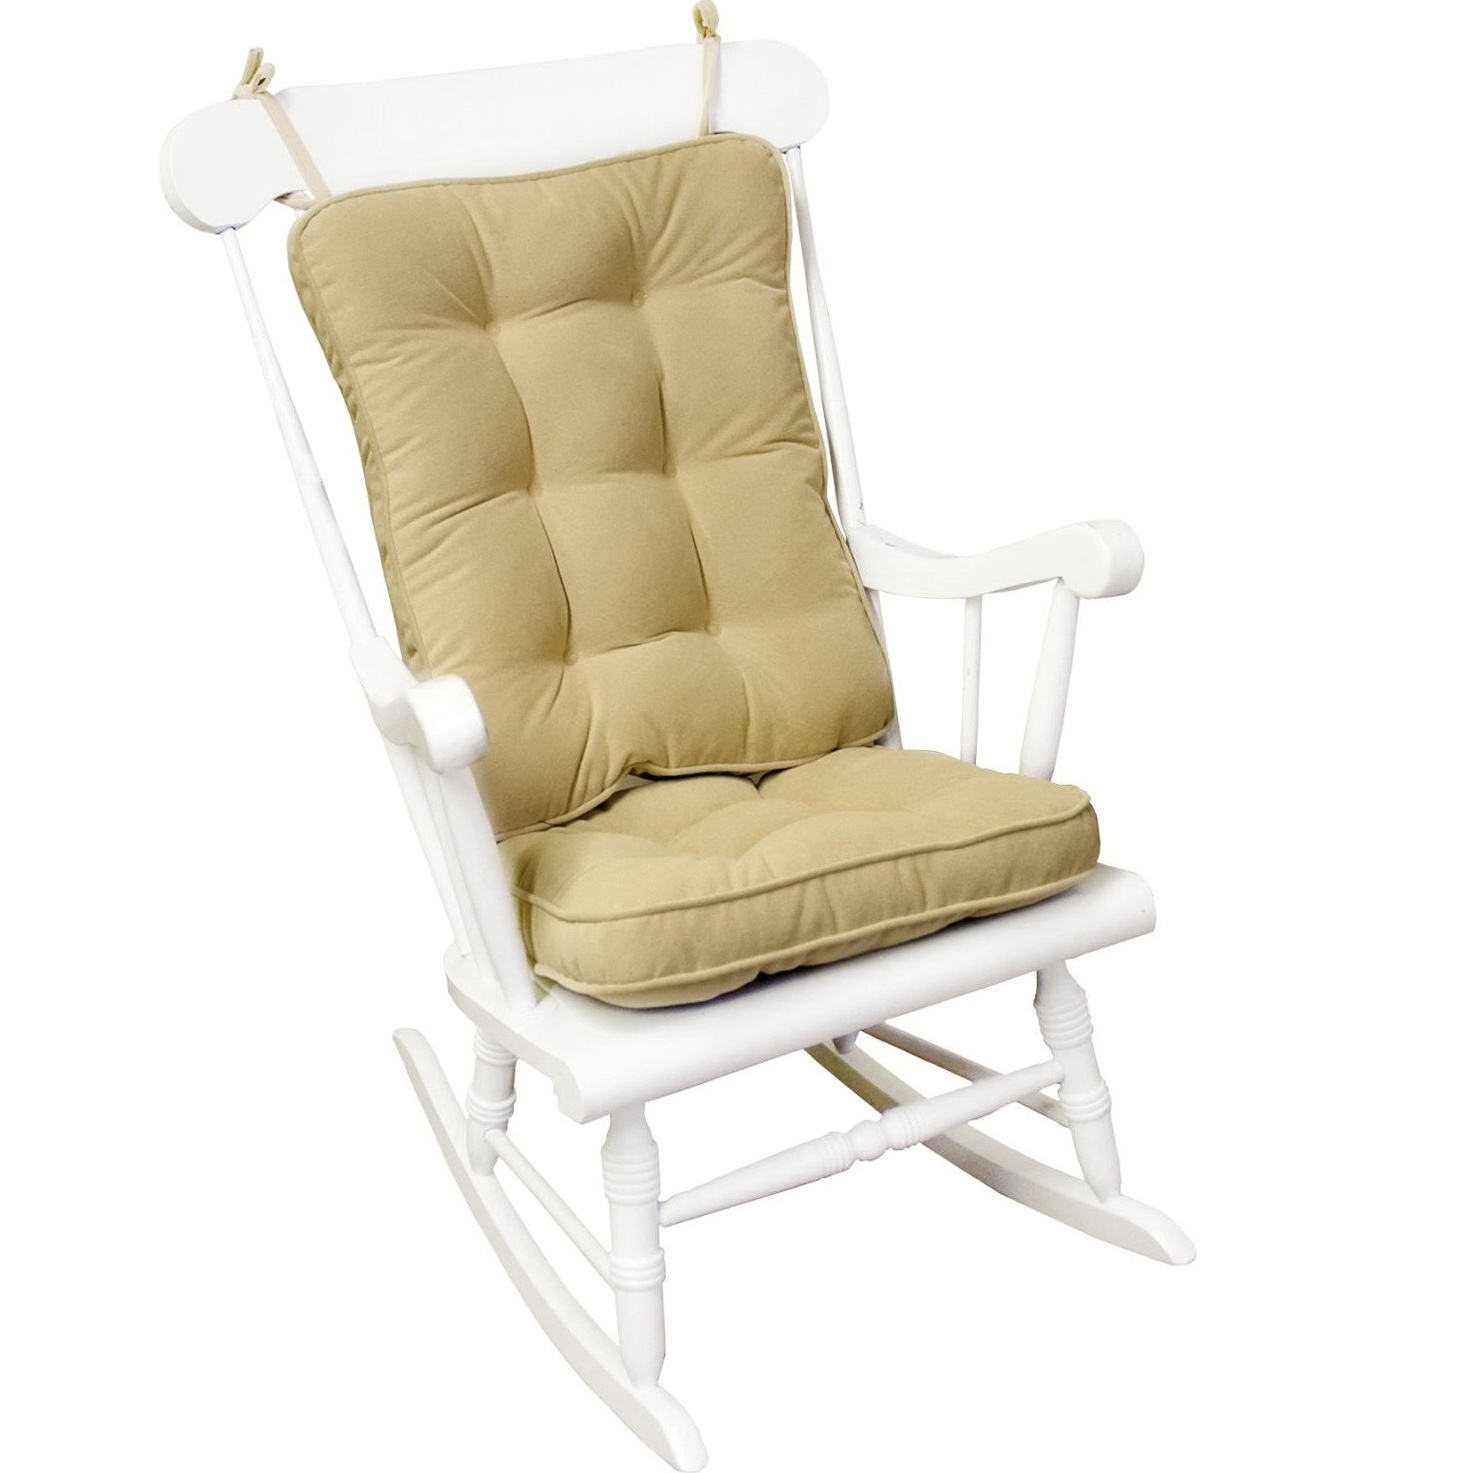 Target Glider Chair Rocking Chair Cushion Set Canada Home Design Ideas